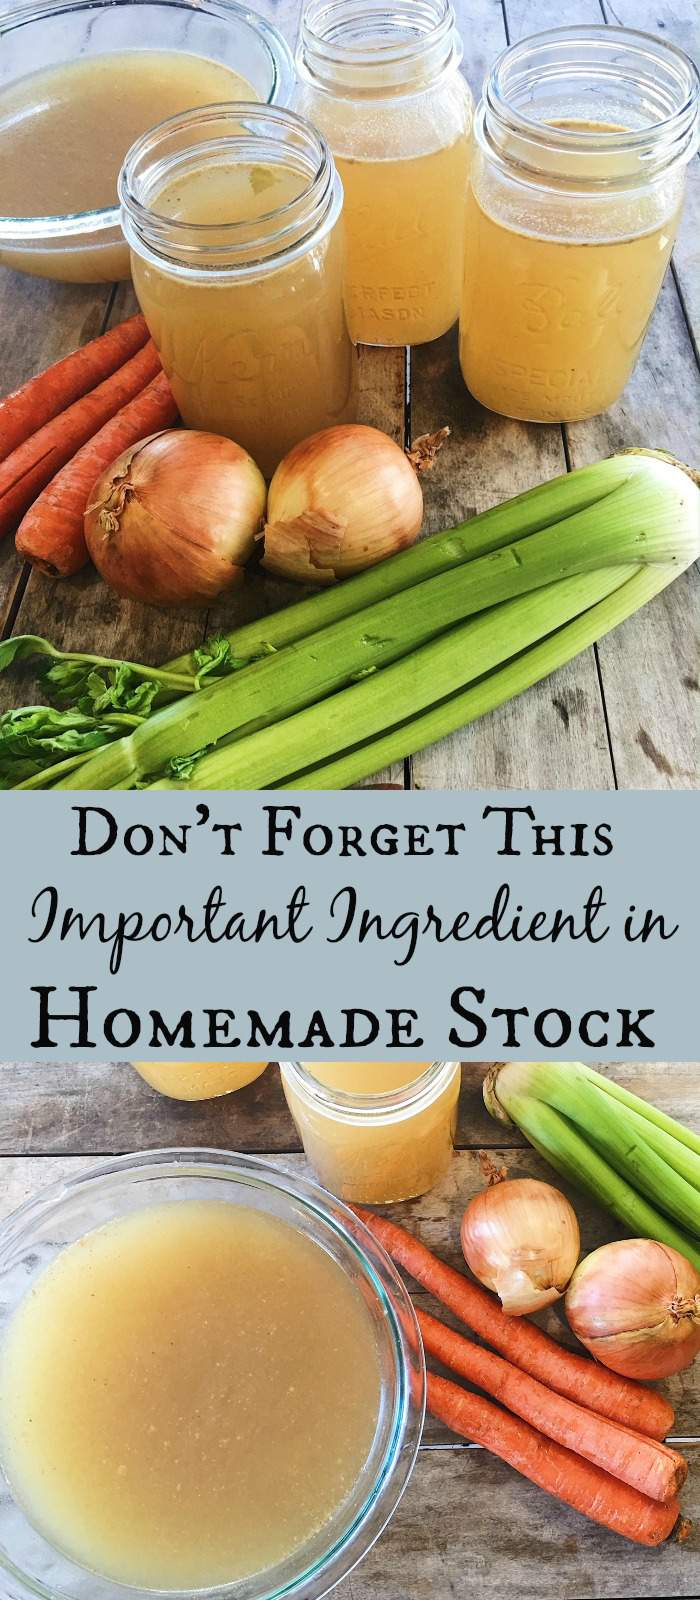 Homemade stock is so easy to make! Learn about the health benefits of homemade stock and how to make it here. Don't forget this important ingredient!